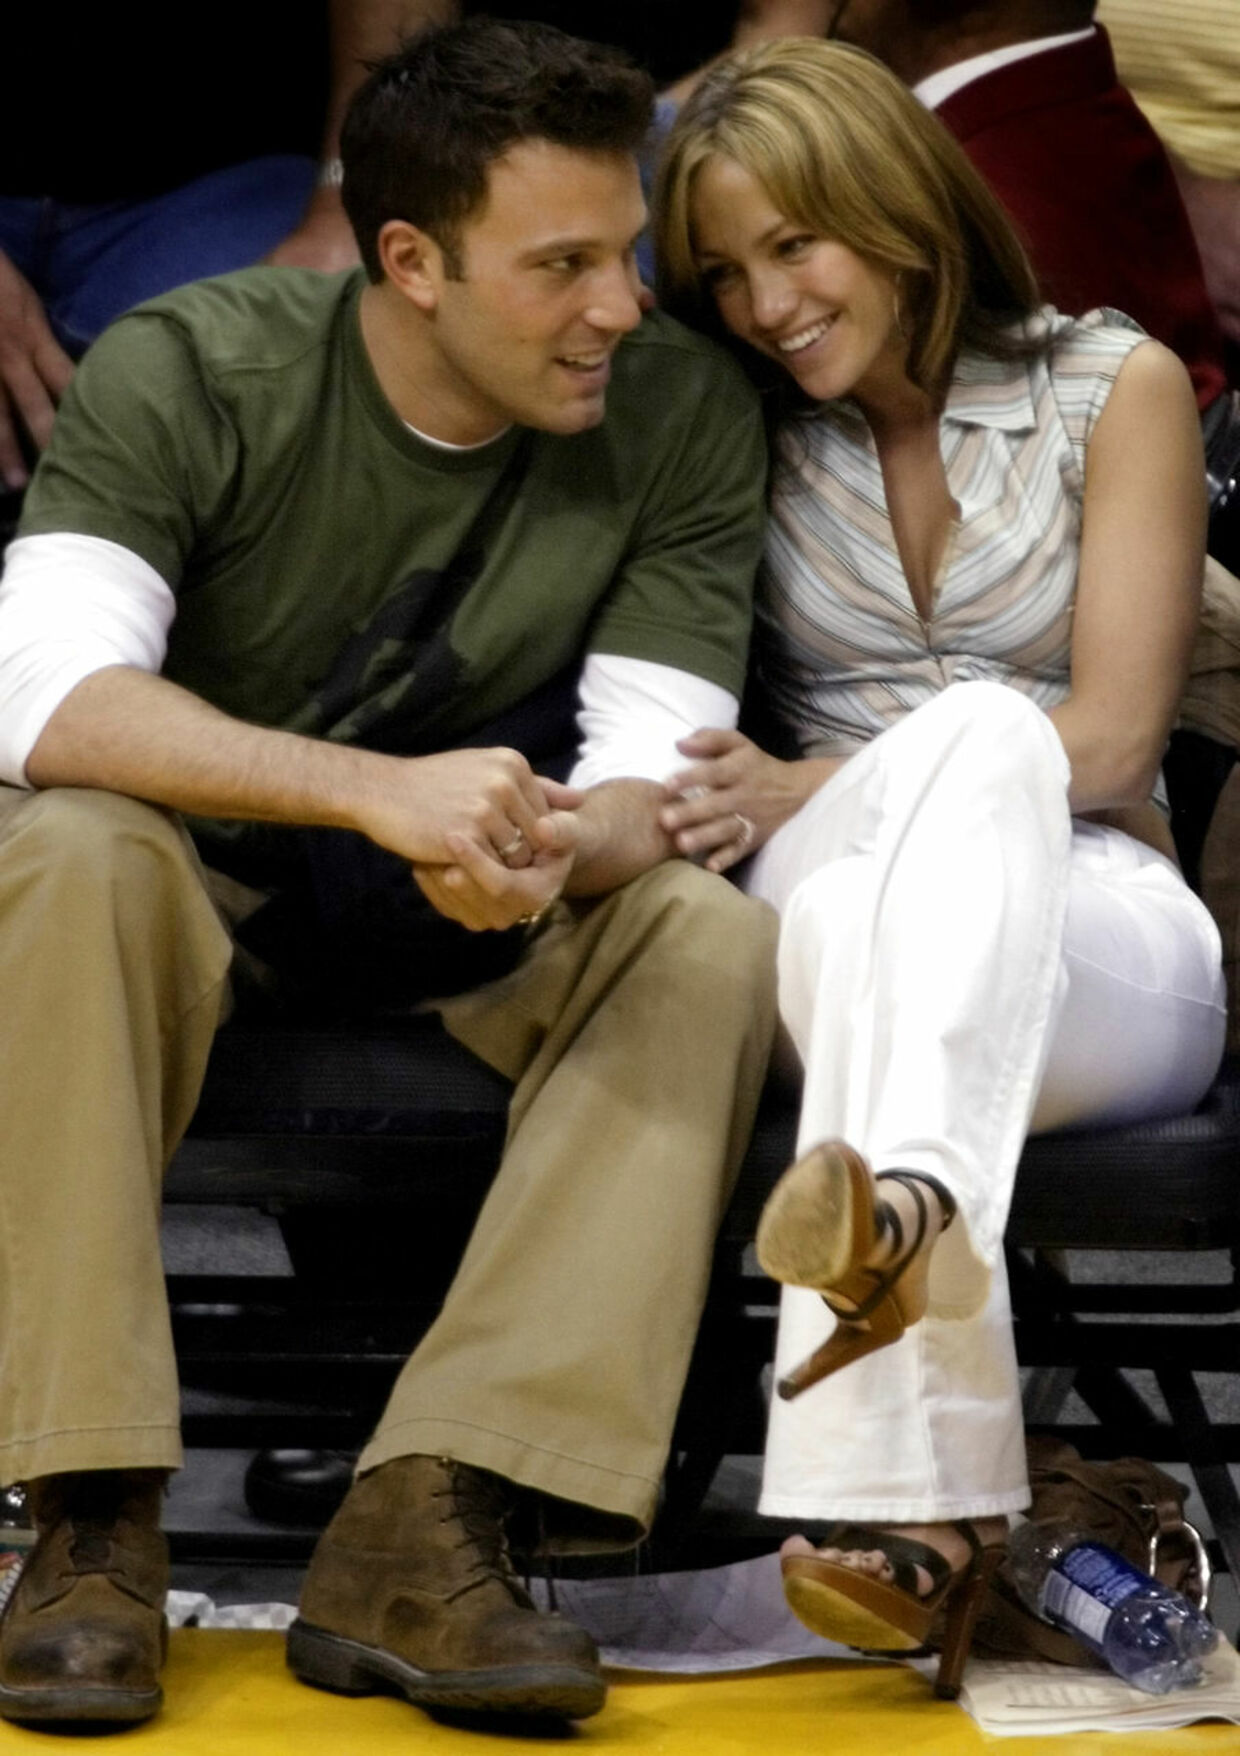 Hollywood couple Ben Affleck gets a smile from fiancee Jennifer Lopez during the Los Angeles Lakers San Antonio Spurs NBA Western Conference semifinal in Los Angeles May 11, 2003. The two actors enjoyed the game court side as the Lakers defeated the Spurs 99-85 to tie their best-of-seven series at 2-2. REUTERS/Mike Blake